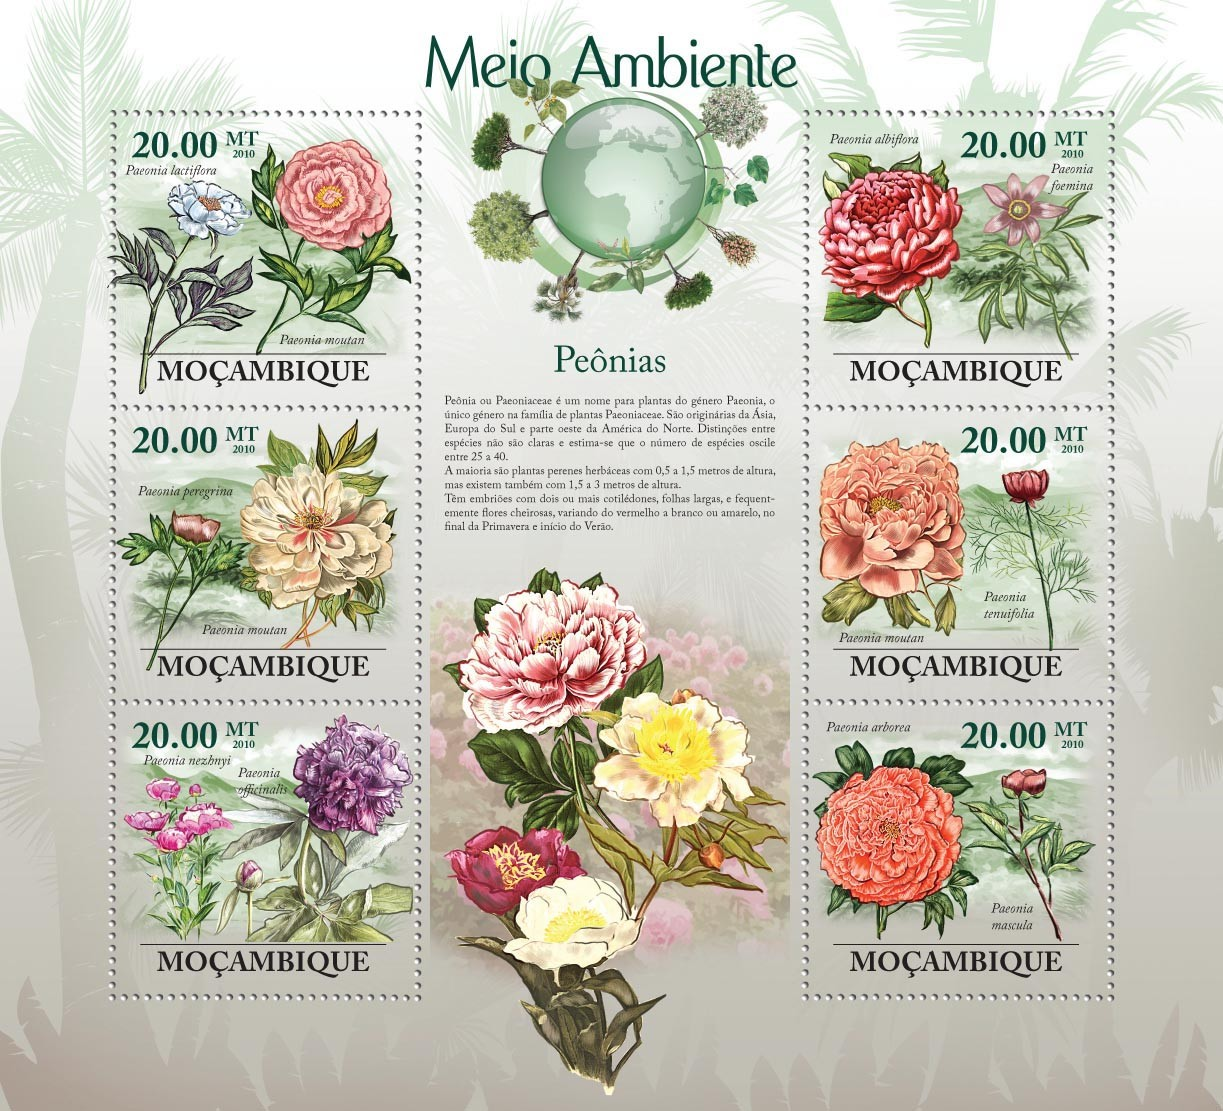 Peony Flower, ( Flower of China ),( Peonia lactiflora, peregrina, officialis, foemija, mountan, mascula, etc..) - Issue of Mozambique postage Stamps